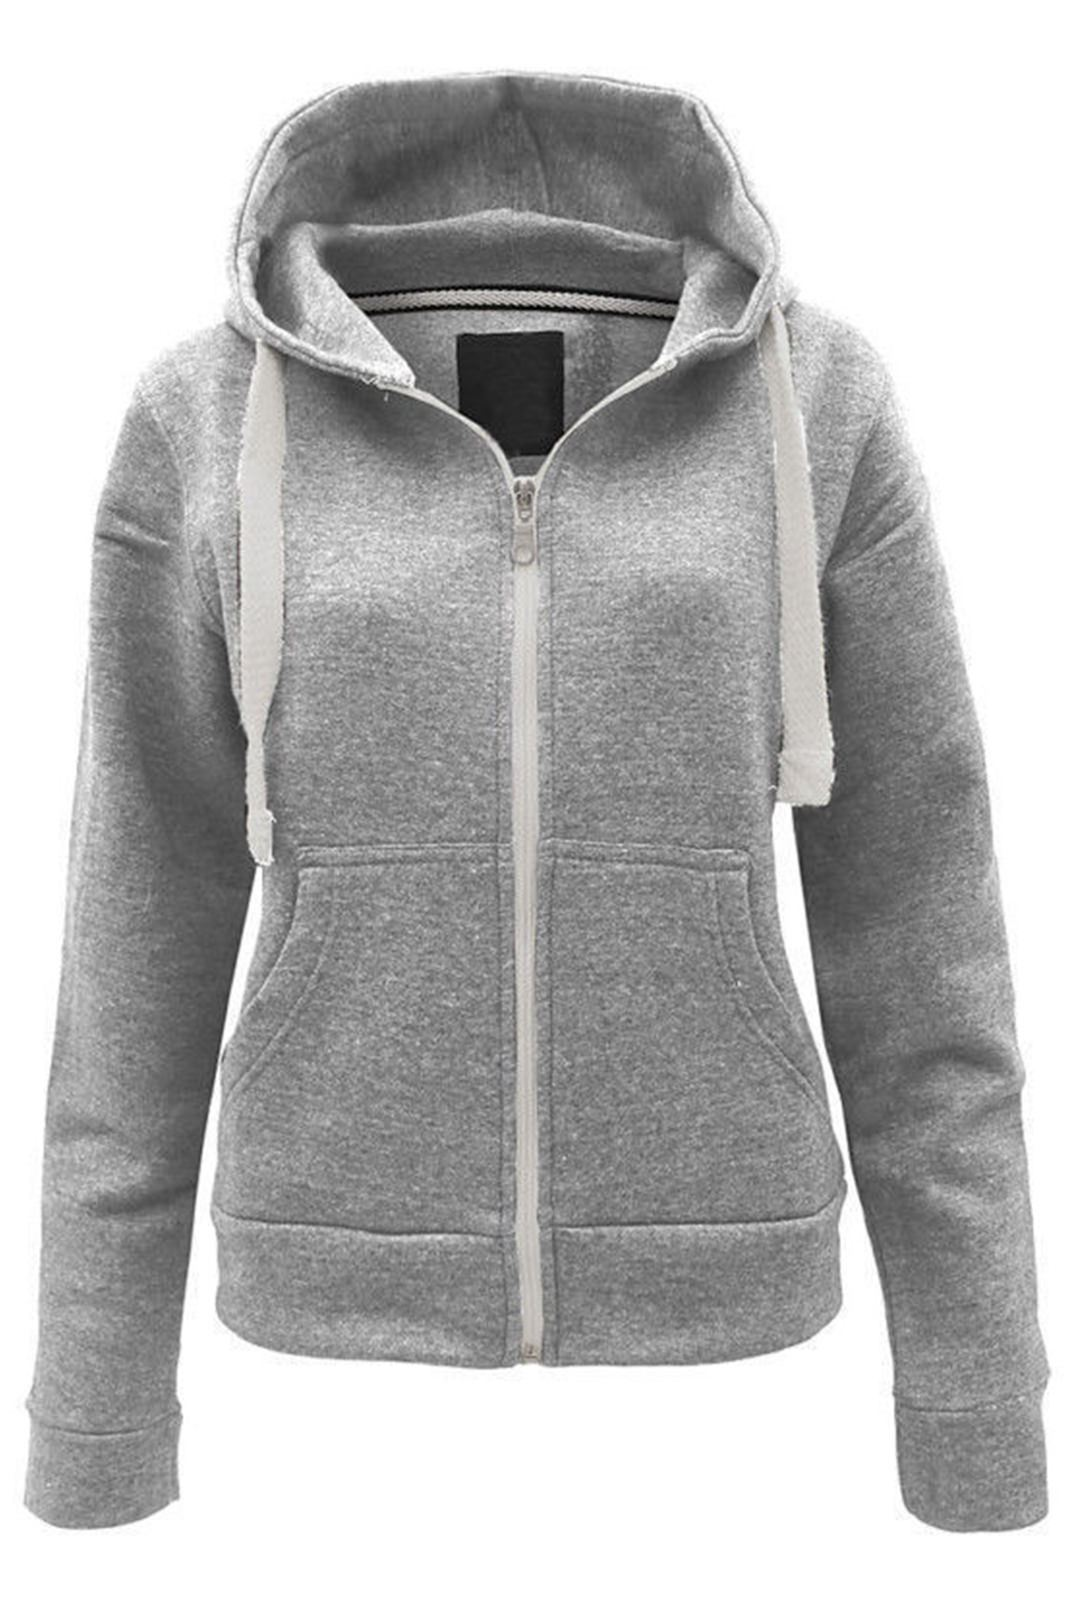 Womens Zip Up Hooded Sweater Her Sweater